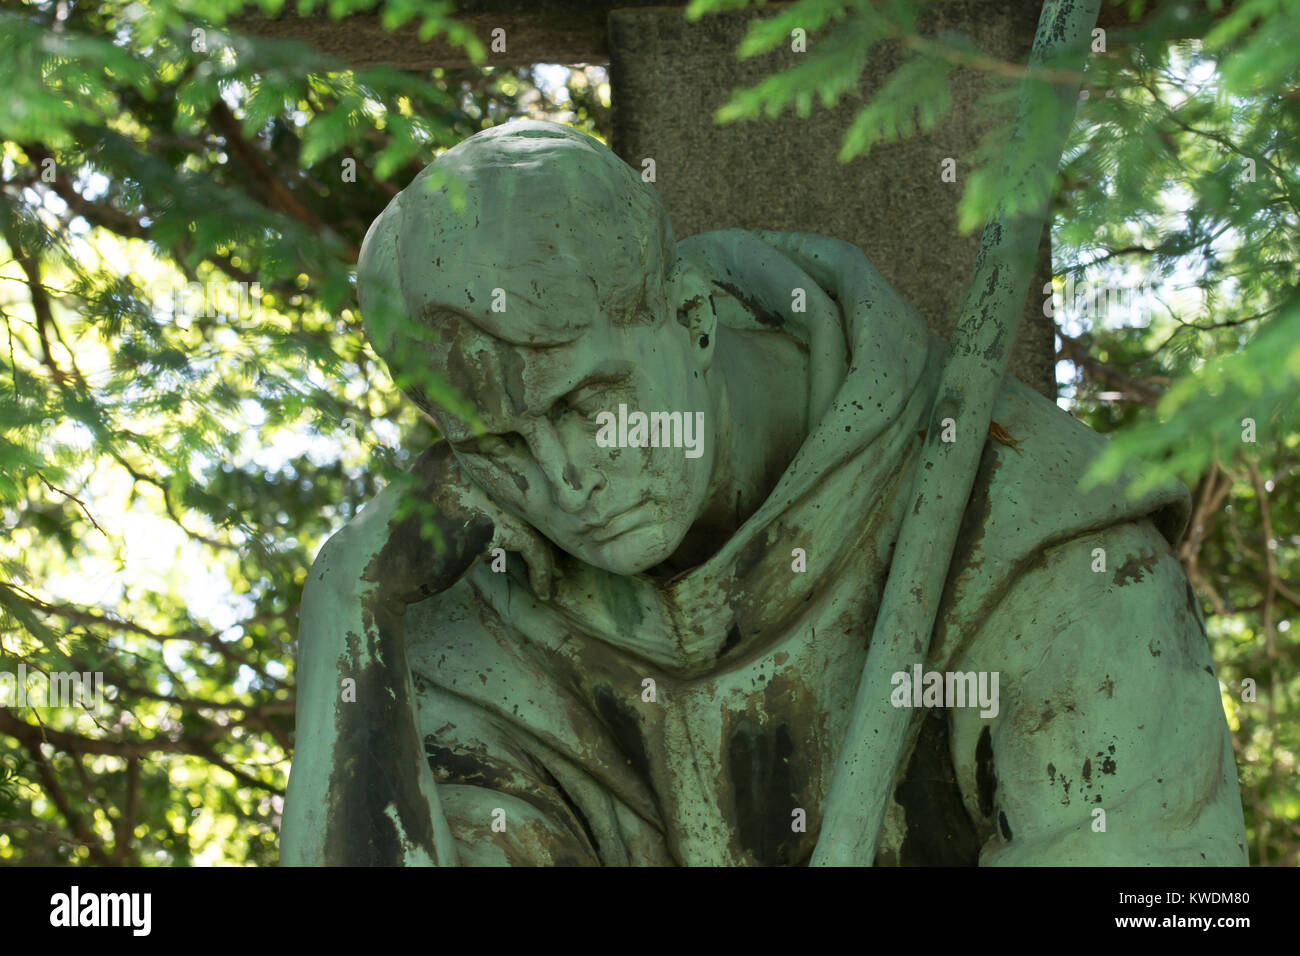 Close up of a sorrowful monk statue. Old catholic cemetery, Dresden, Germany. Stock Photo